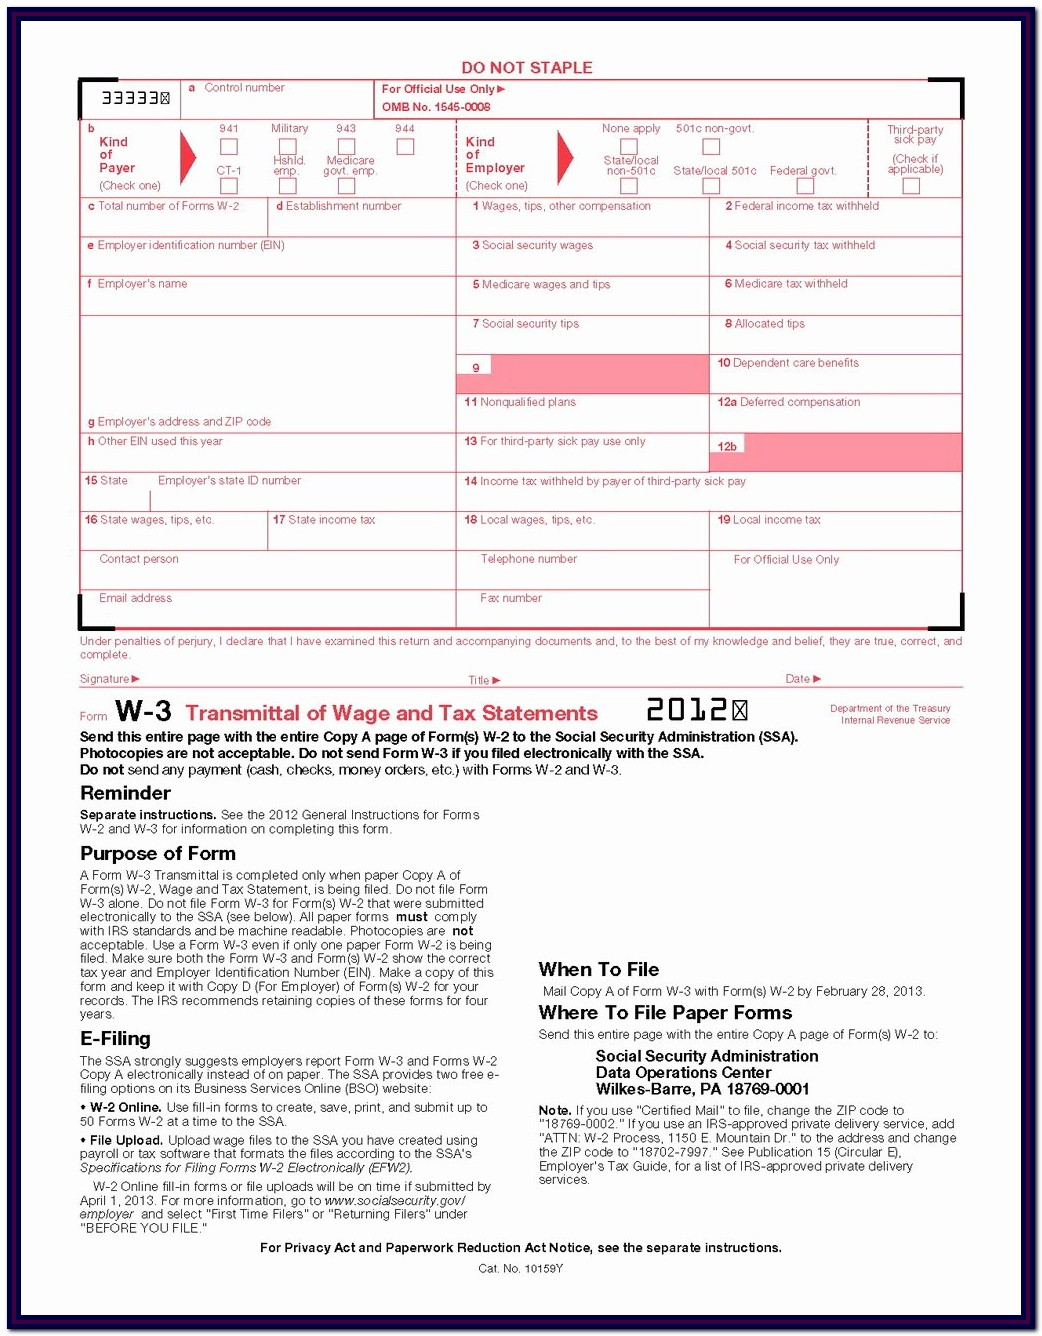 Irs Form 2290 Instructions 2019